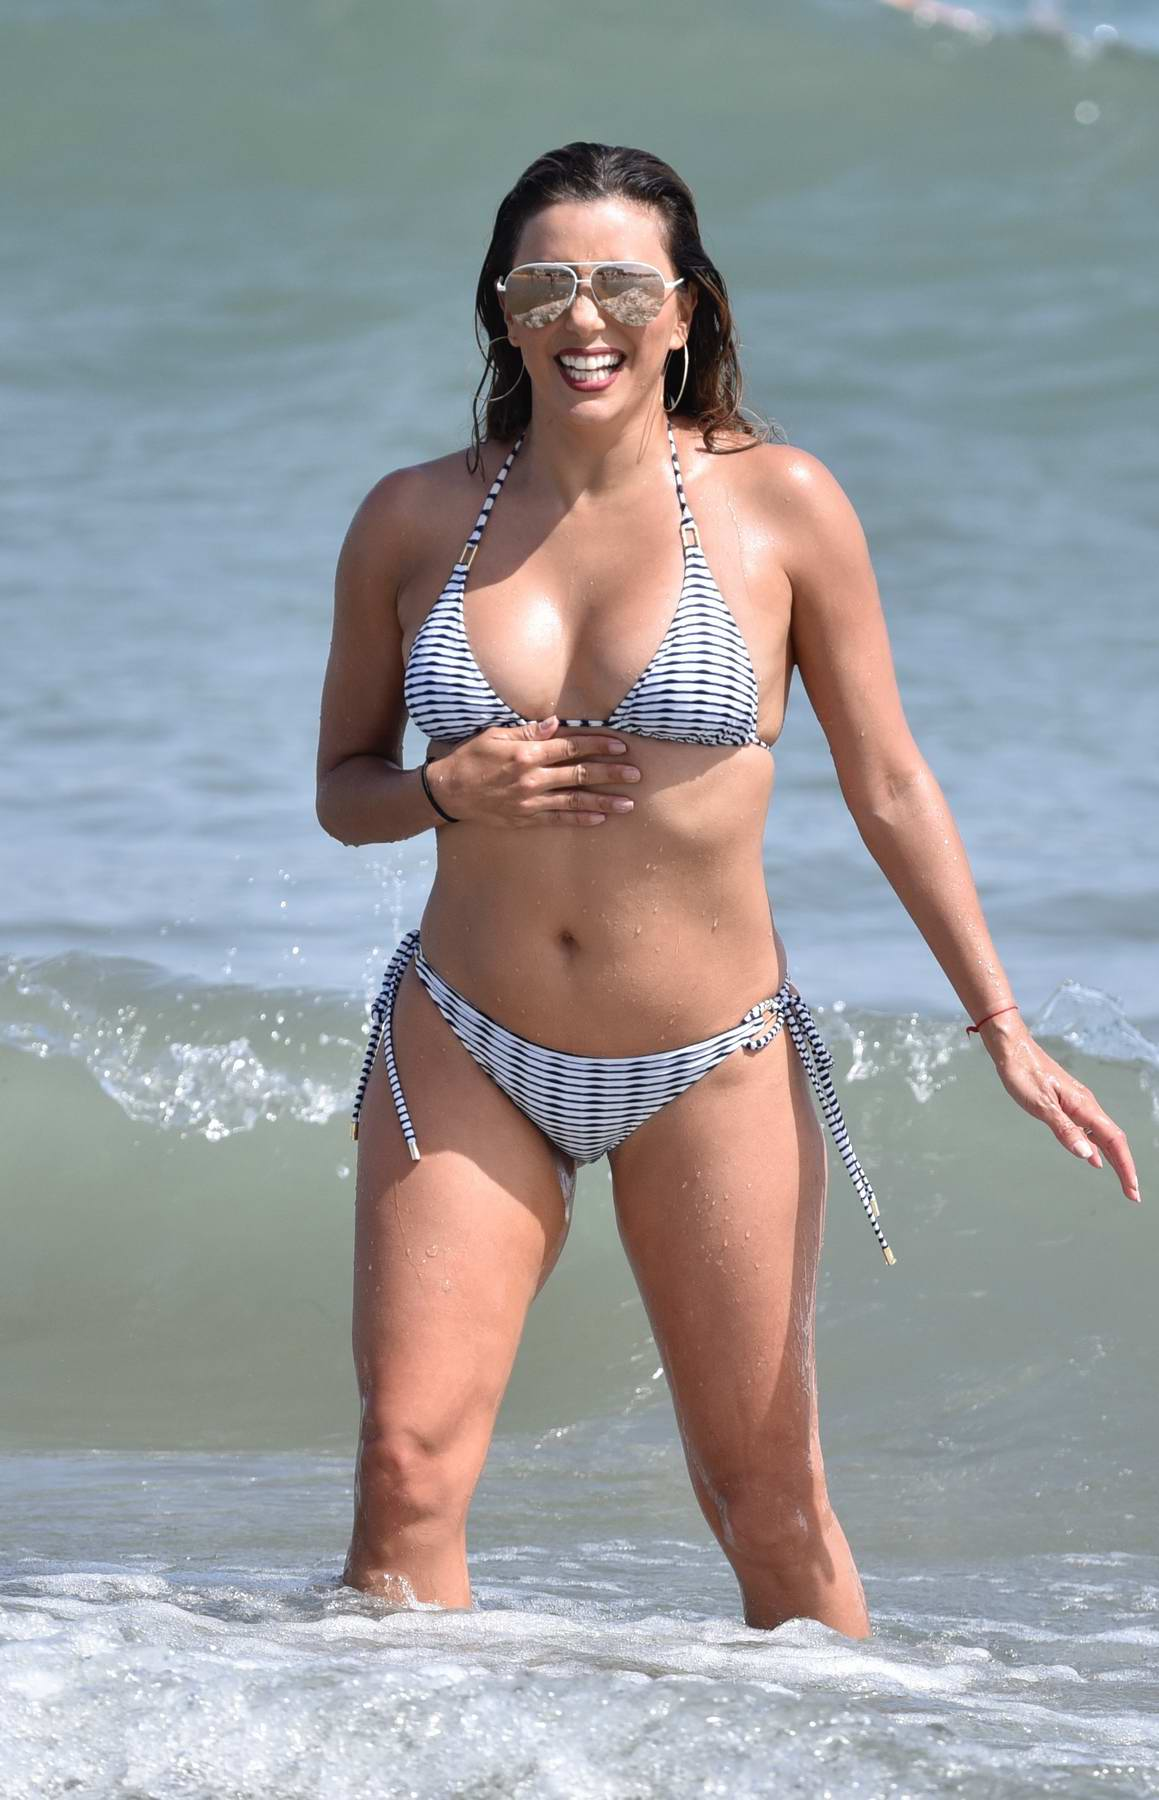 Eva Longoria in a Bikini enjoys the Beach with her Husband and Friends in Marbella, Spain